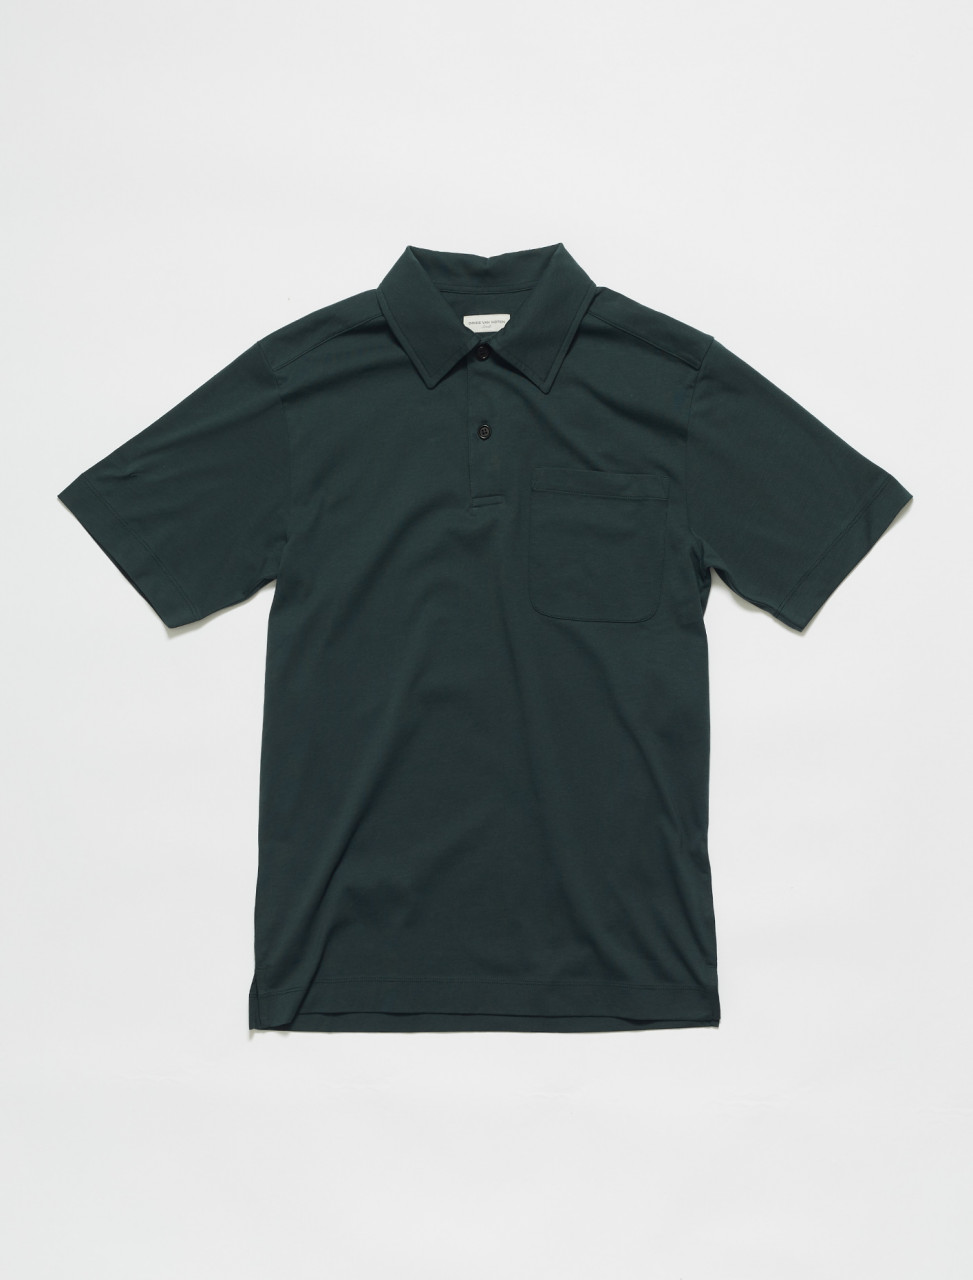 211-21160-2600-605 DRIES VAN NOTEN HELDER JERSEY POLO TOP IN DARK GREEN